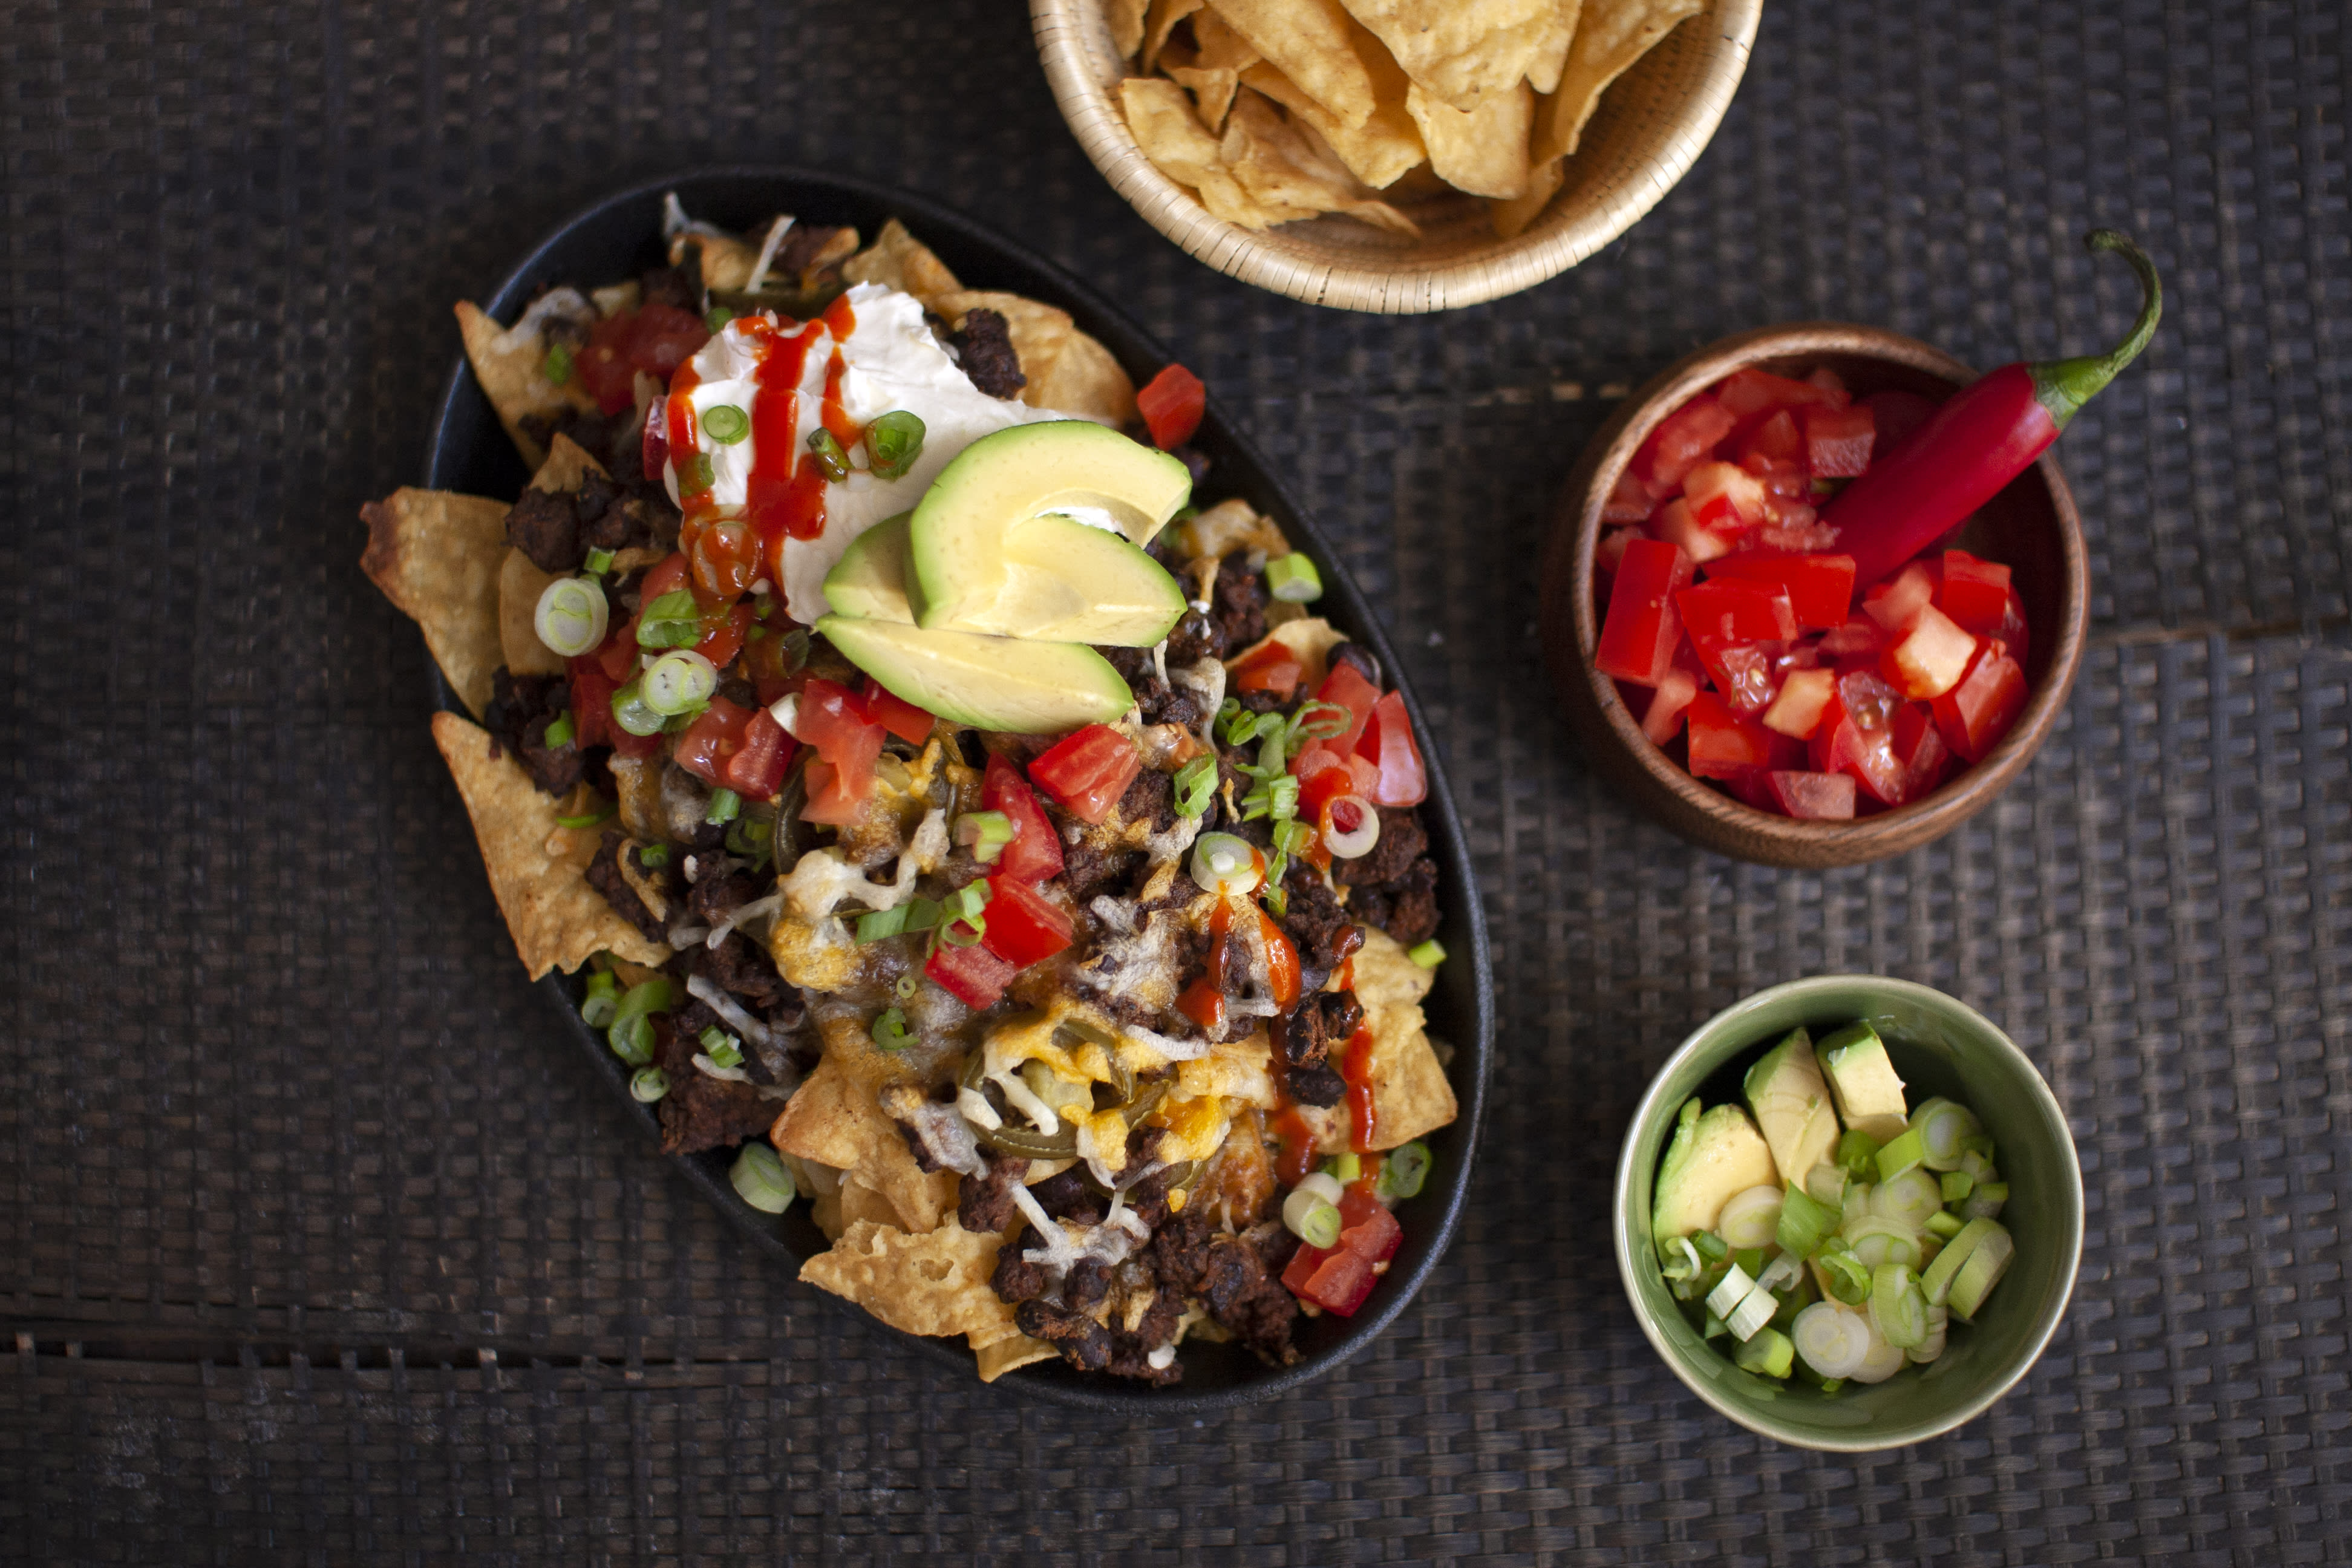 Loaded Beef Nachos with Jalapeno and Sour Cream